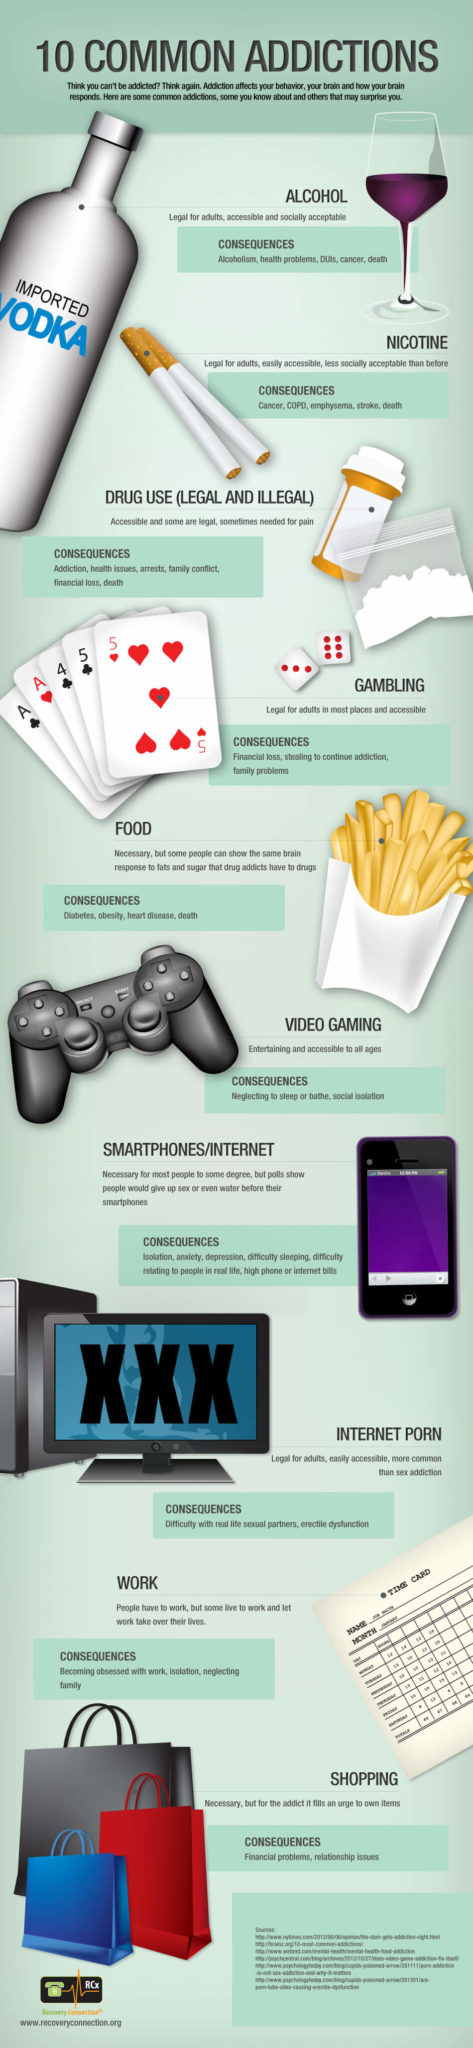 most-common-addictions-infographic